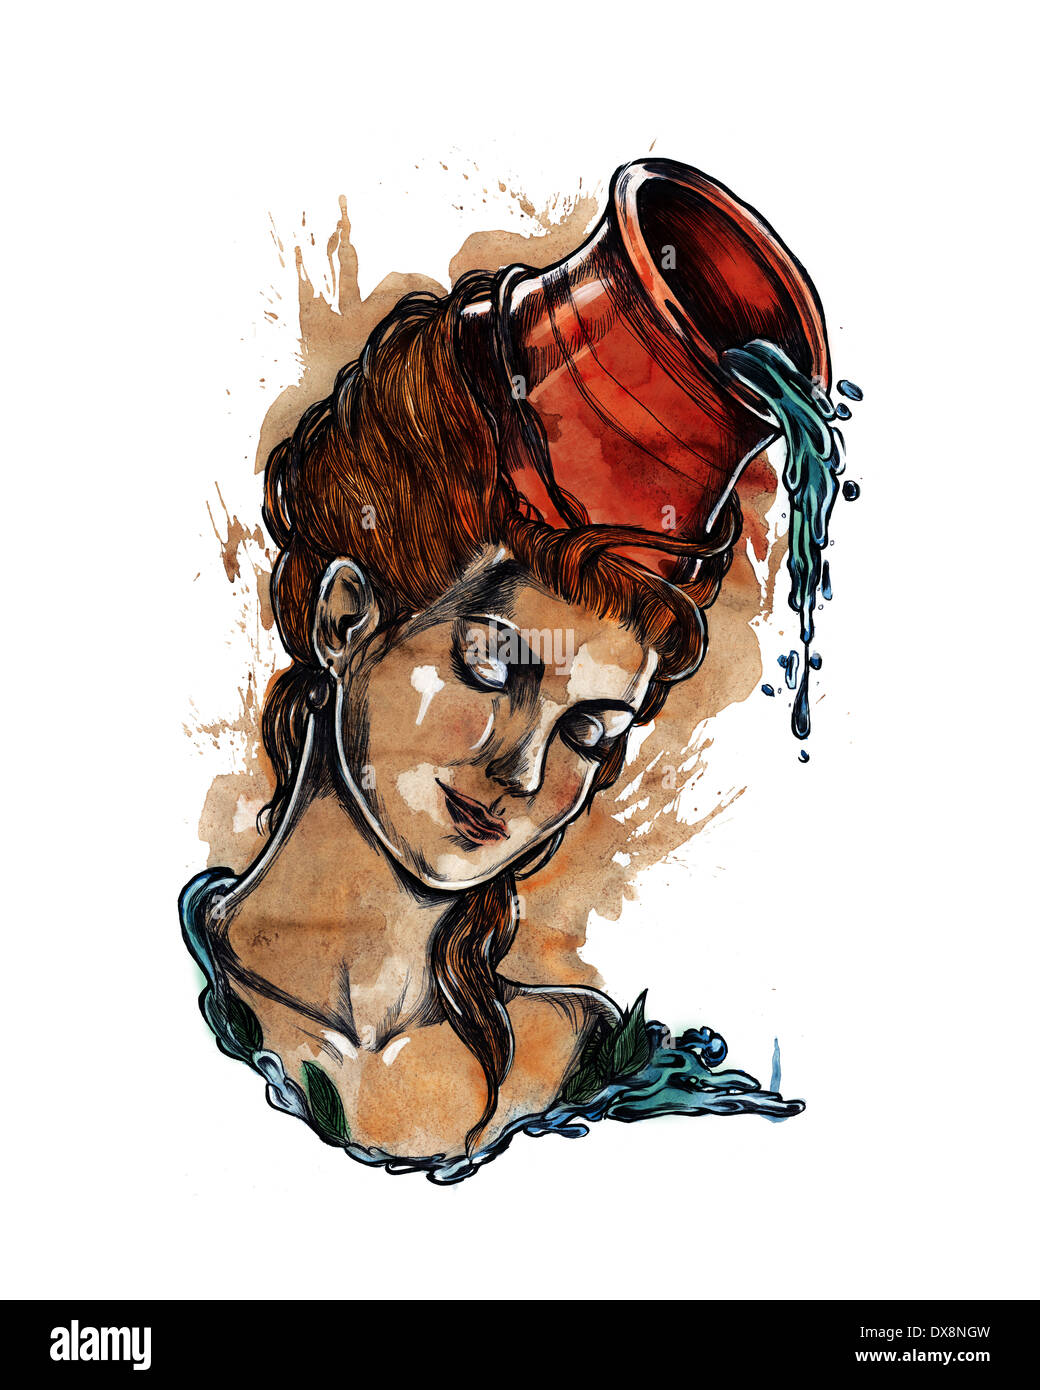 Illustration of young woman with pot pouring water representing Aquarius zodiac sign - Stock Image